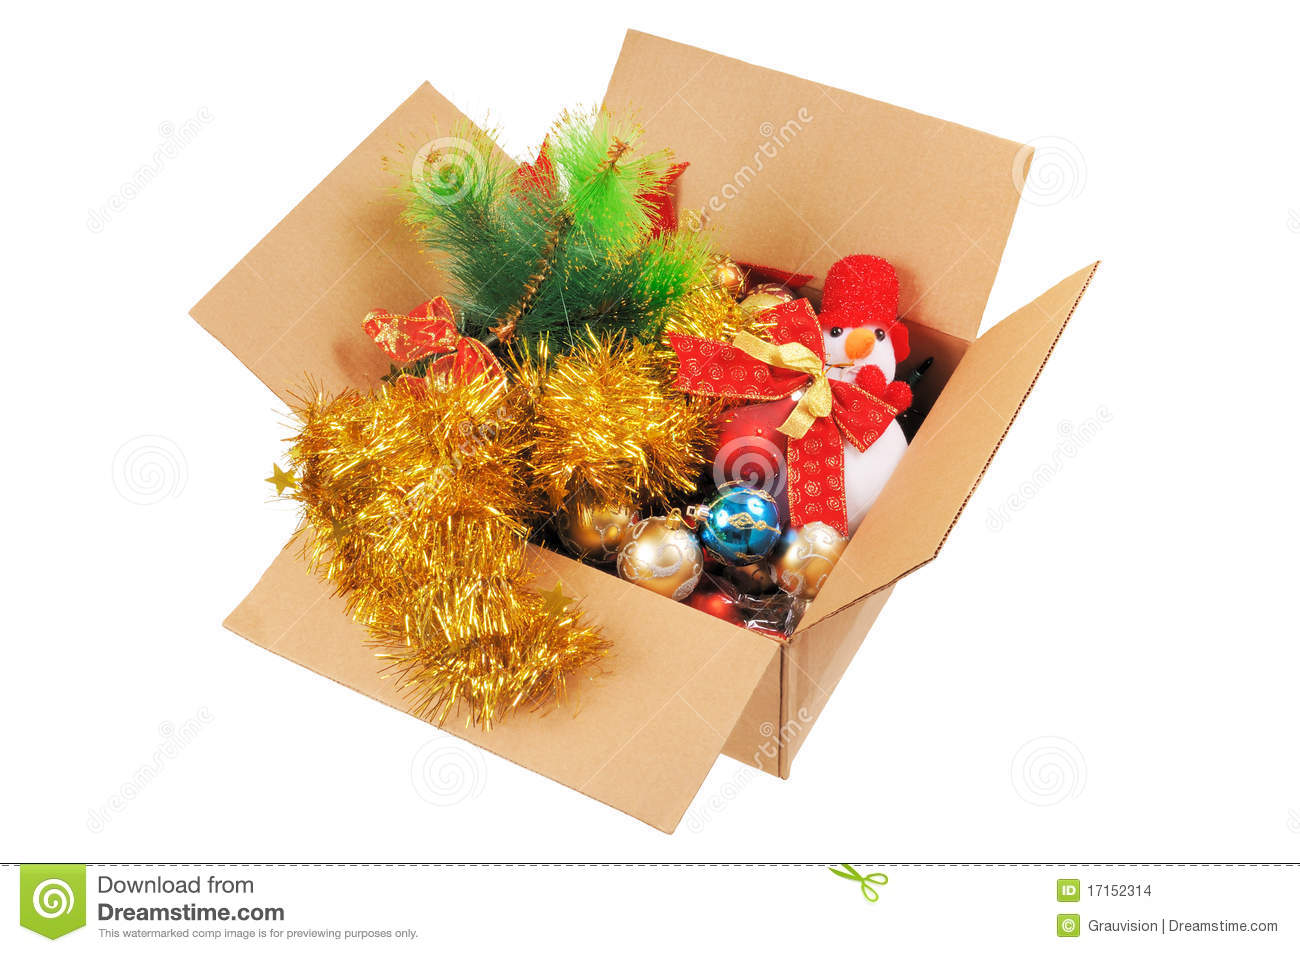 Christmas Box Decorations Part - 38: Decoration Image Idea